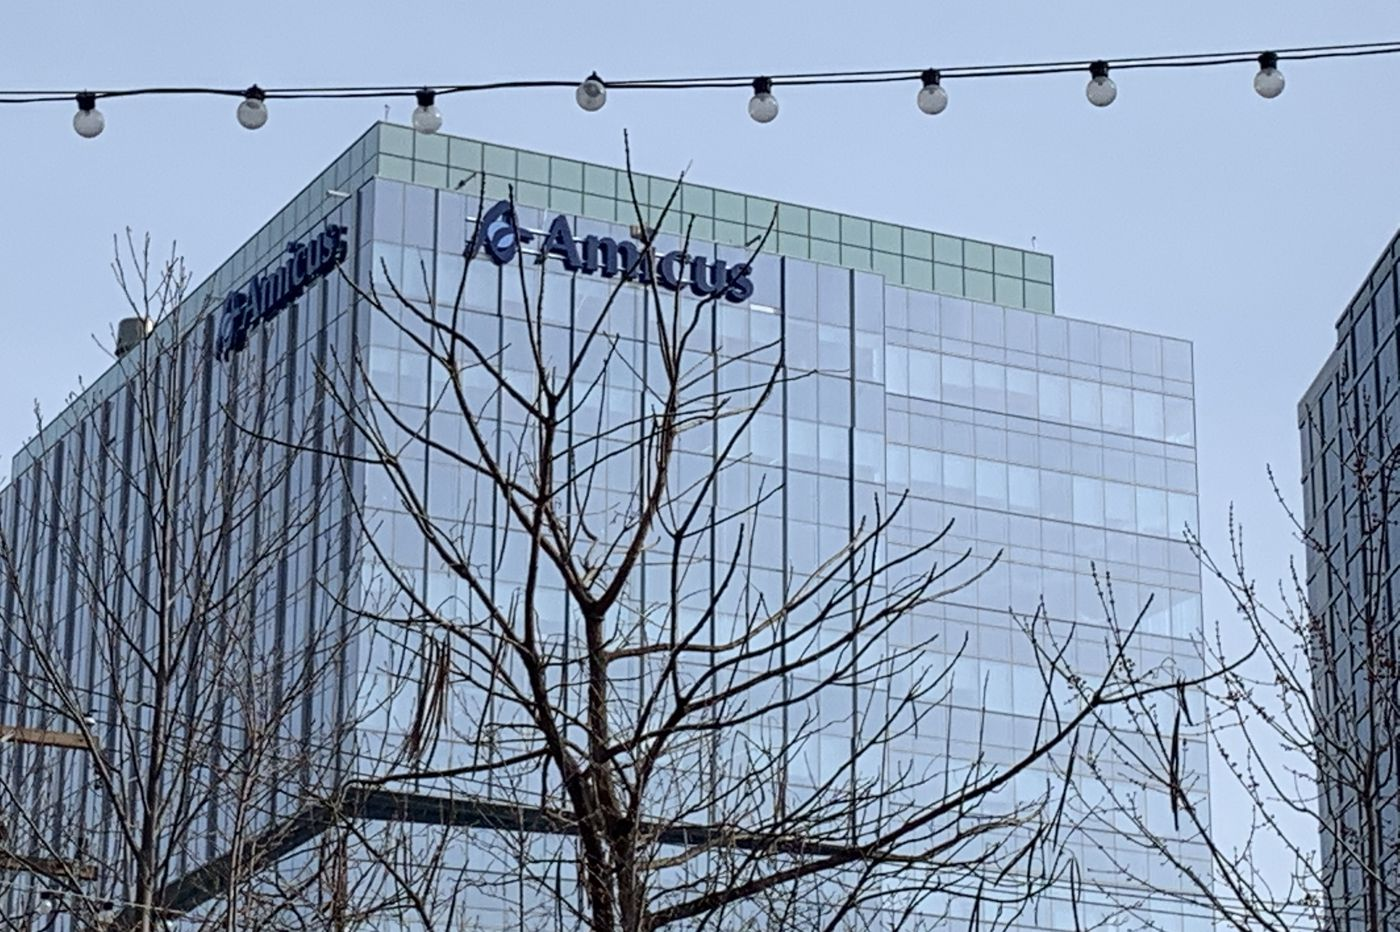 Amicus opens UCity R&D tower, calls Philly the 'Cradle of Cures'